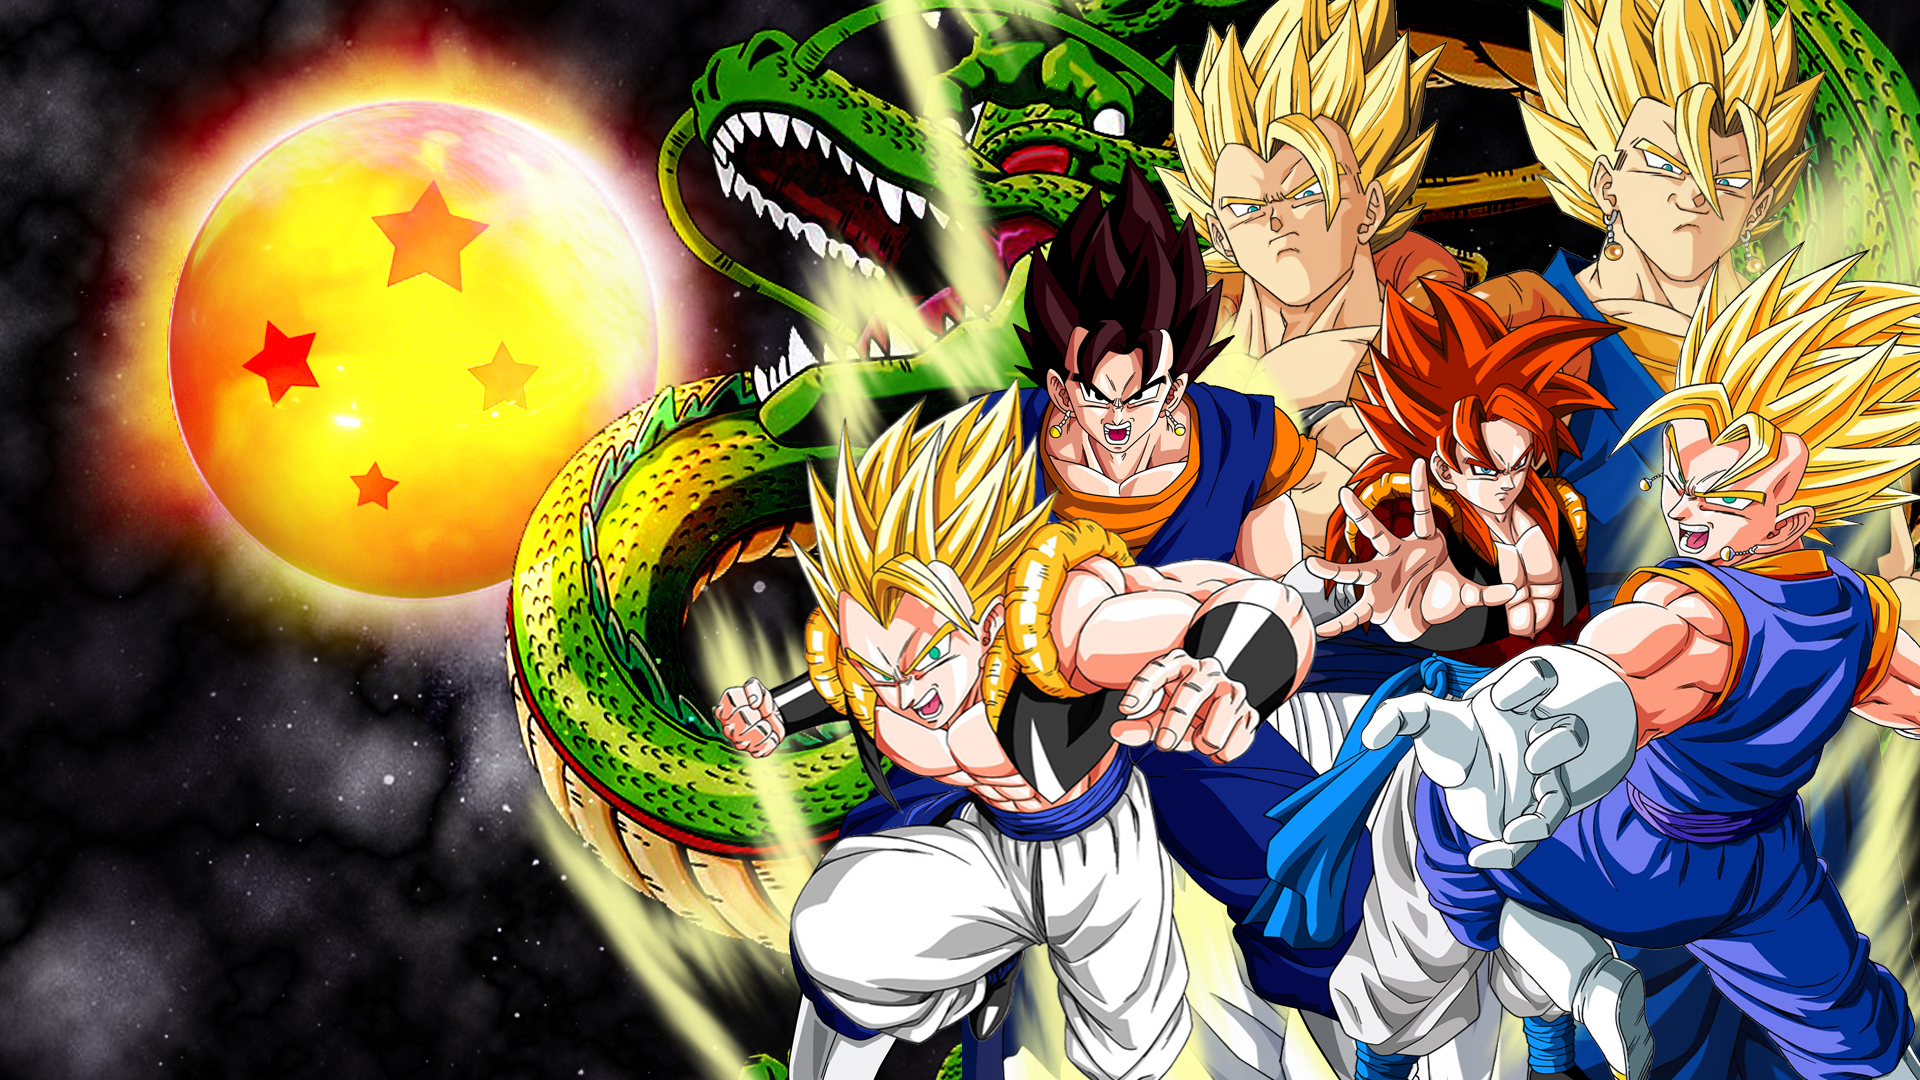 Dragon ball gt full hd wallpaper and background image 1920x1080 anime dragon ball gt wallpaper voltagebd Image collections